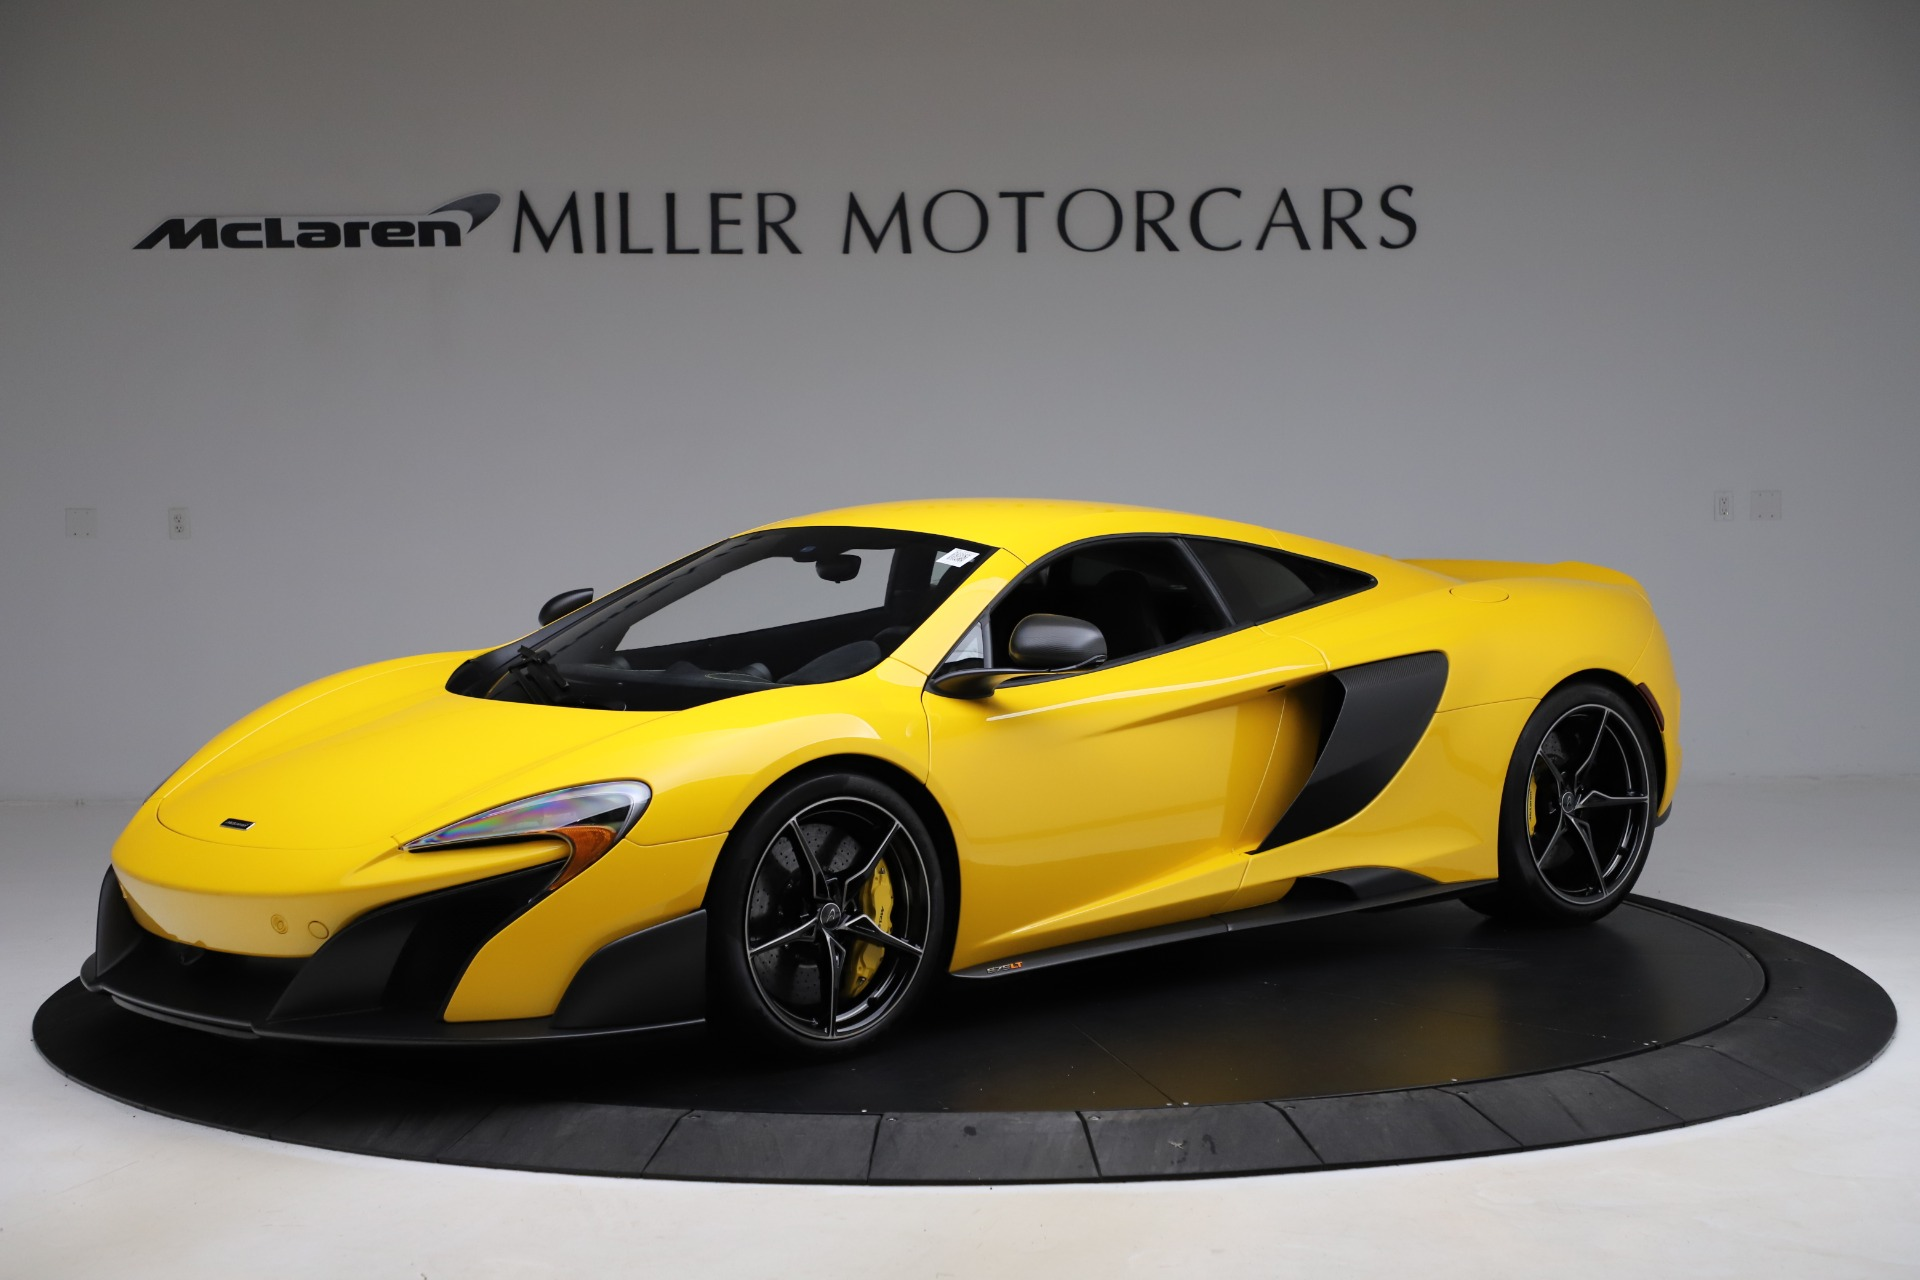 Used 2016 McLaren 675LT Coupe for sale $219,900 at McLaren Greenwich in Greenwich CT 06830 1